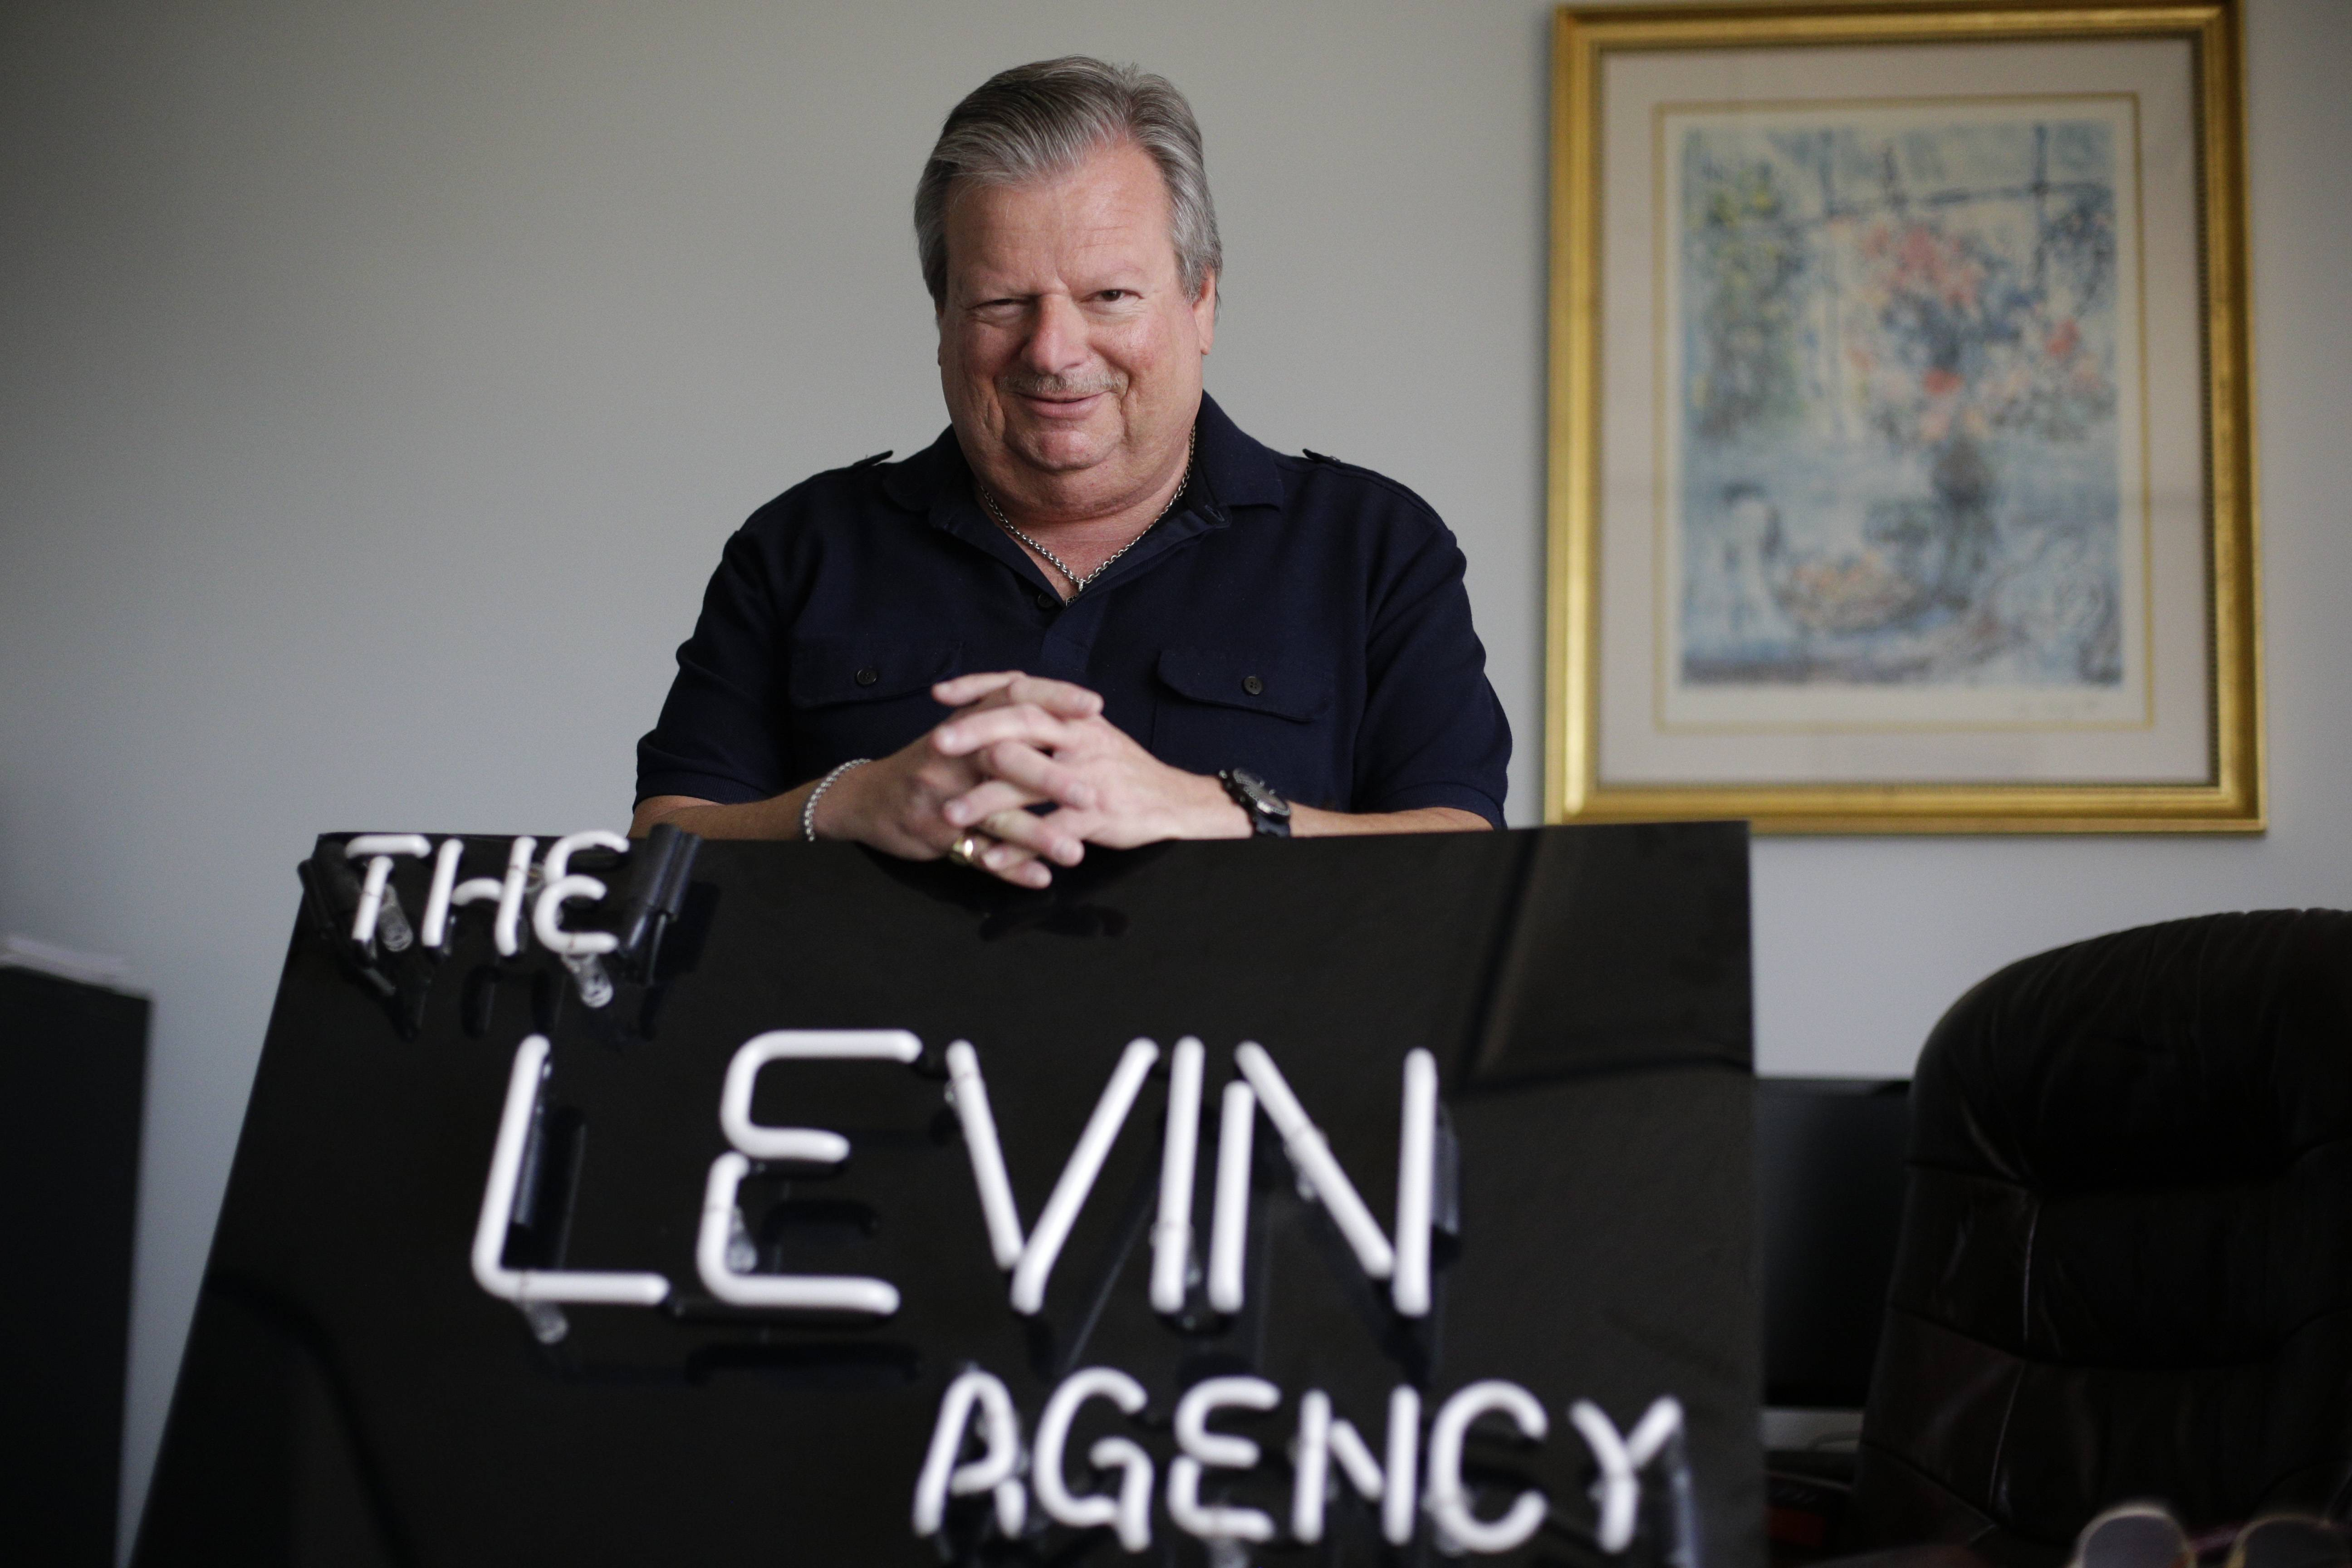 In Hollywood, where seemingly everyone wants to be a star, but very few look like James Franco or Scarlett Johansson, Sid Levin is the talent agent who represents the people who look like the rest of us.